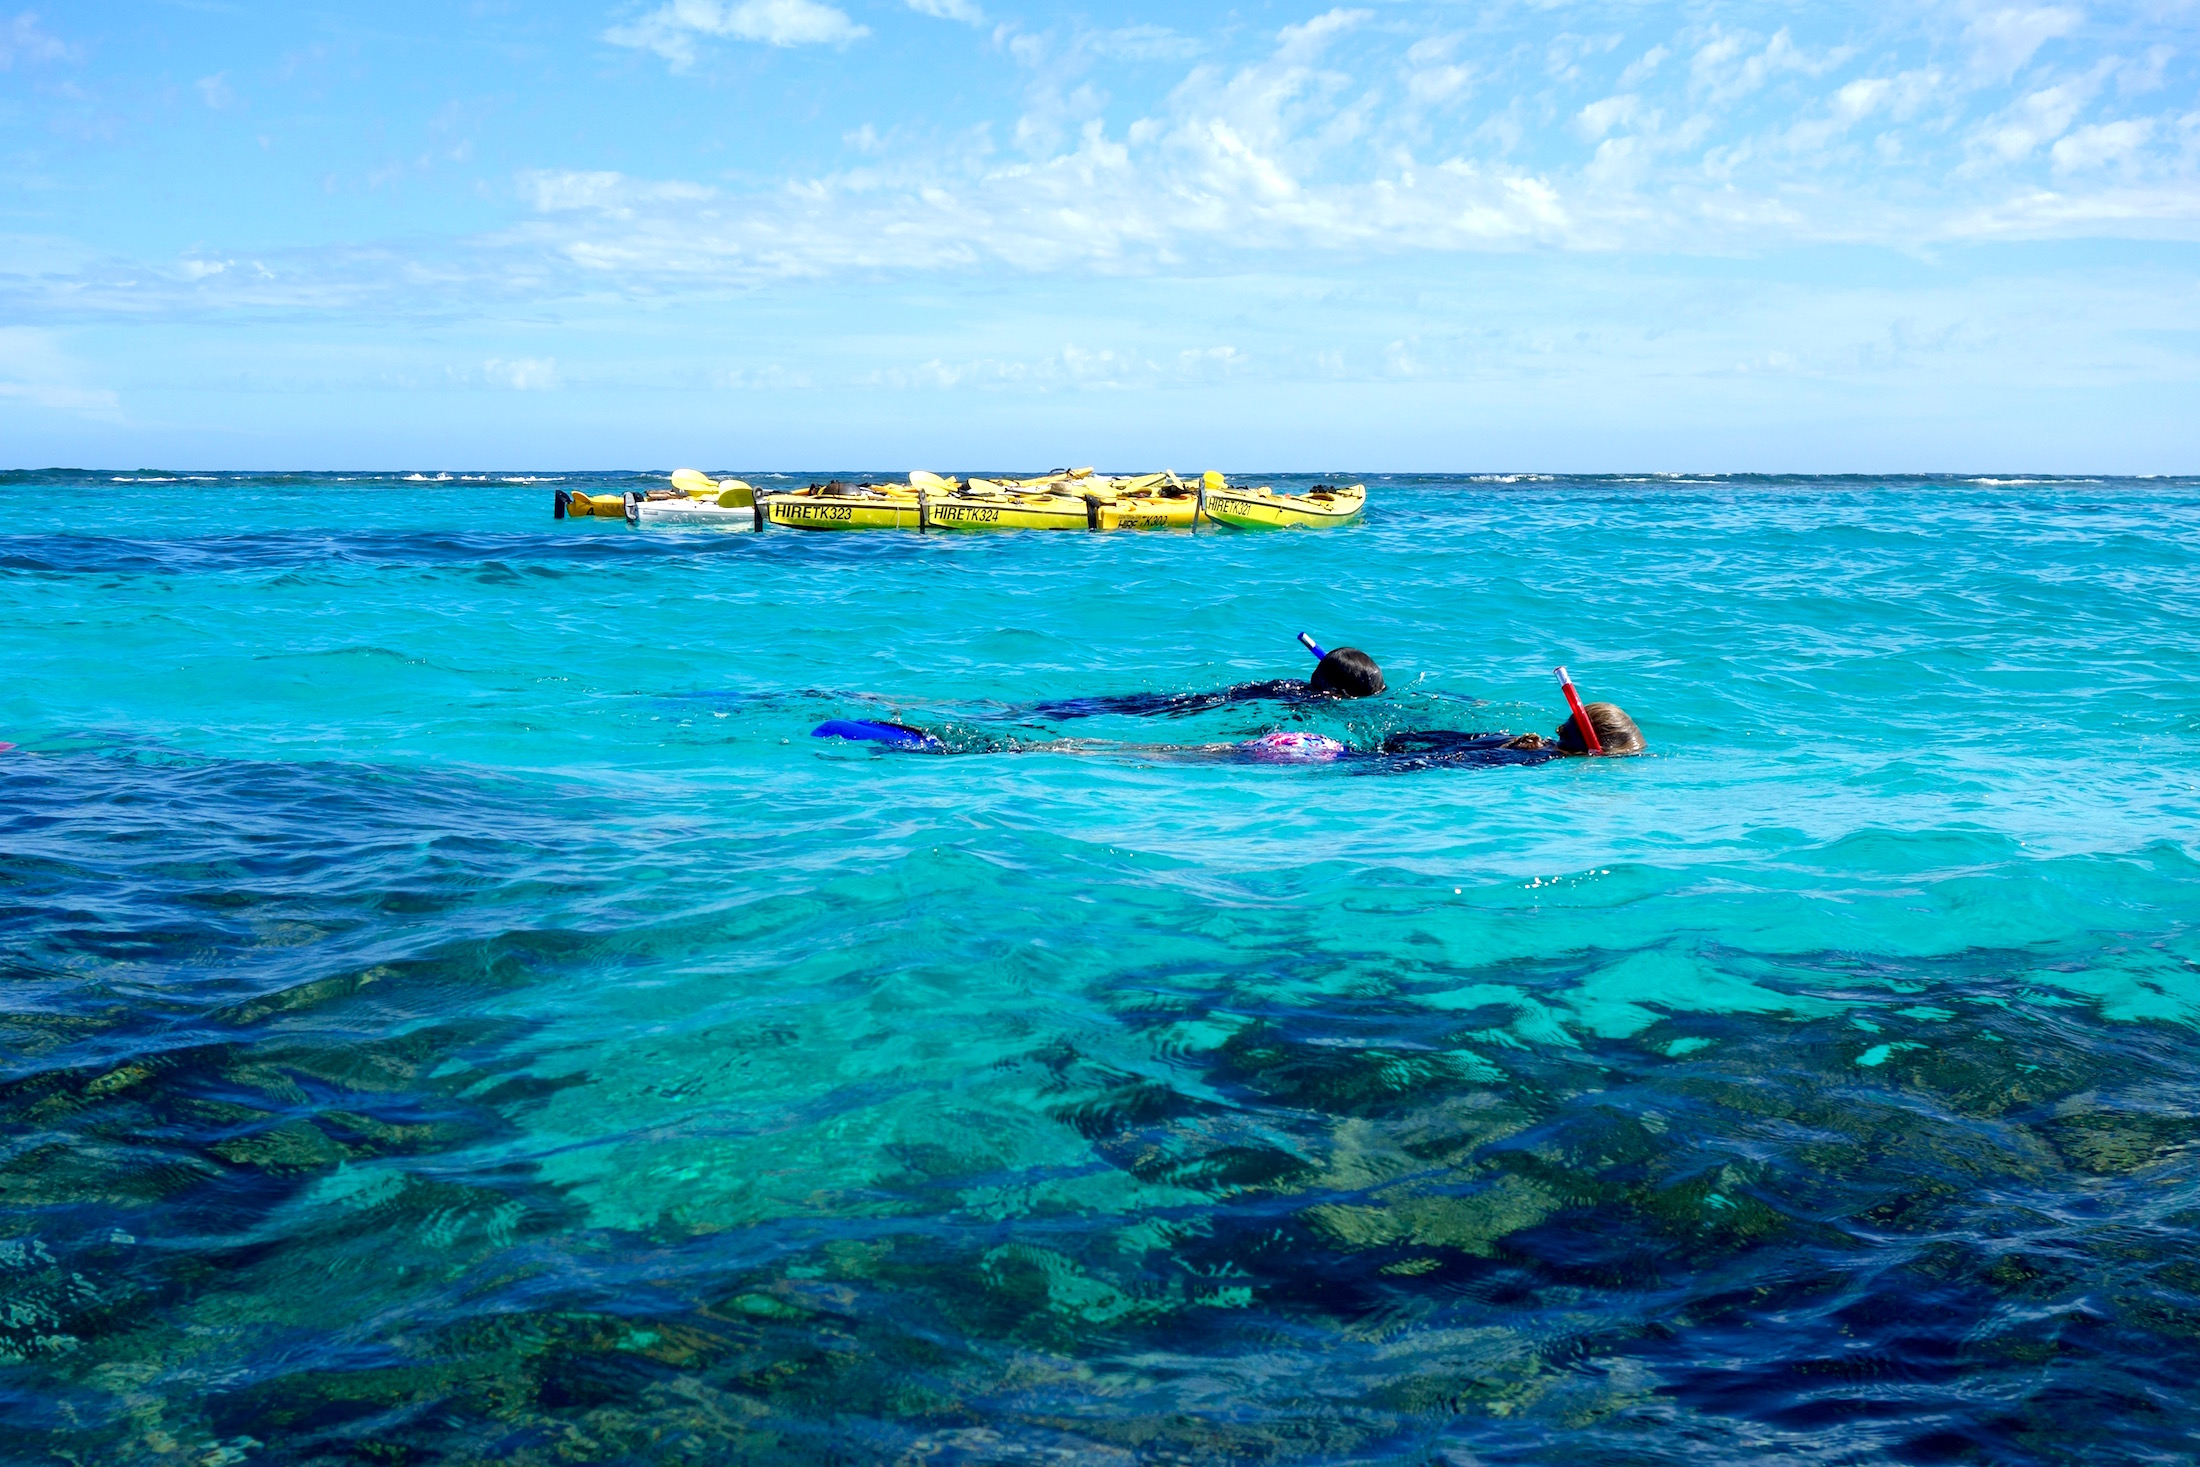 3 day Reef and Beach, 4 day Reef and Beach and Whale Shark Adventure Package, camp, sea kayak, snorkel, eco tour, Ningaloo Reef, Cape Range National Park, Exmouth Adventure Co, Western Australia